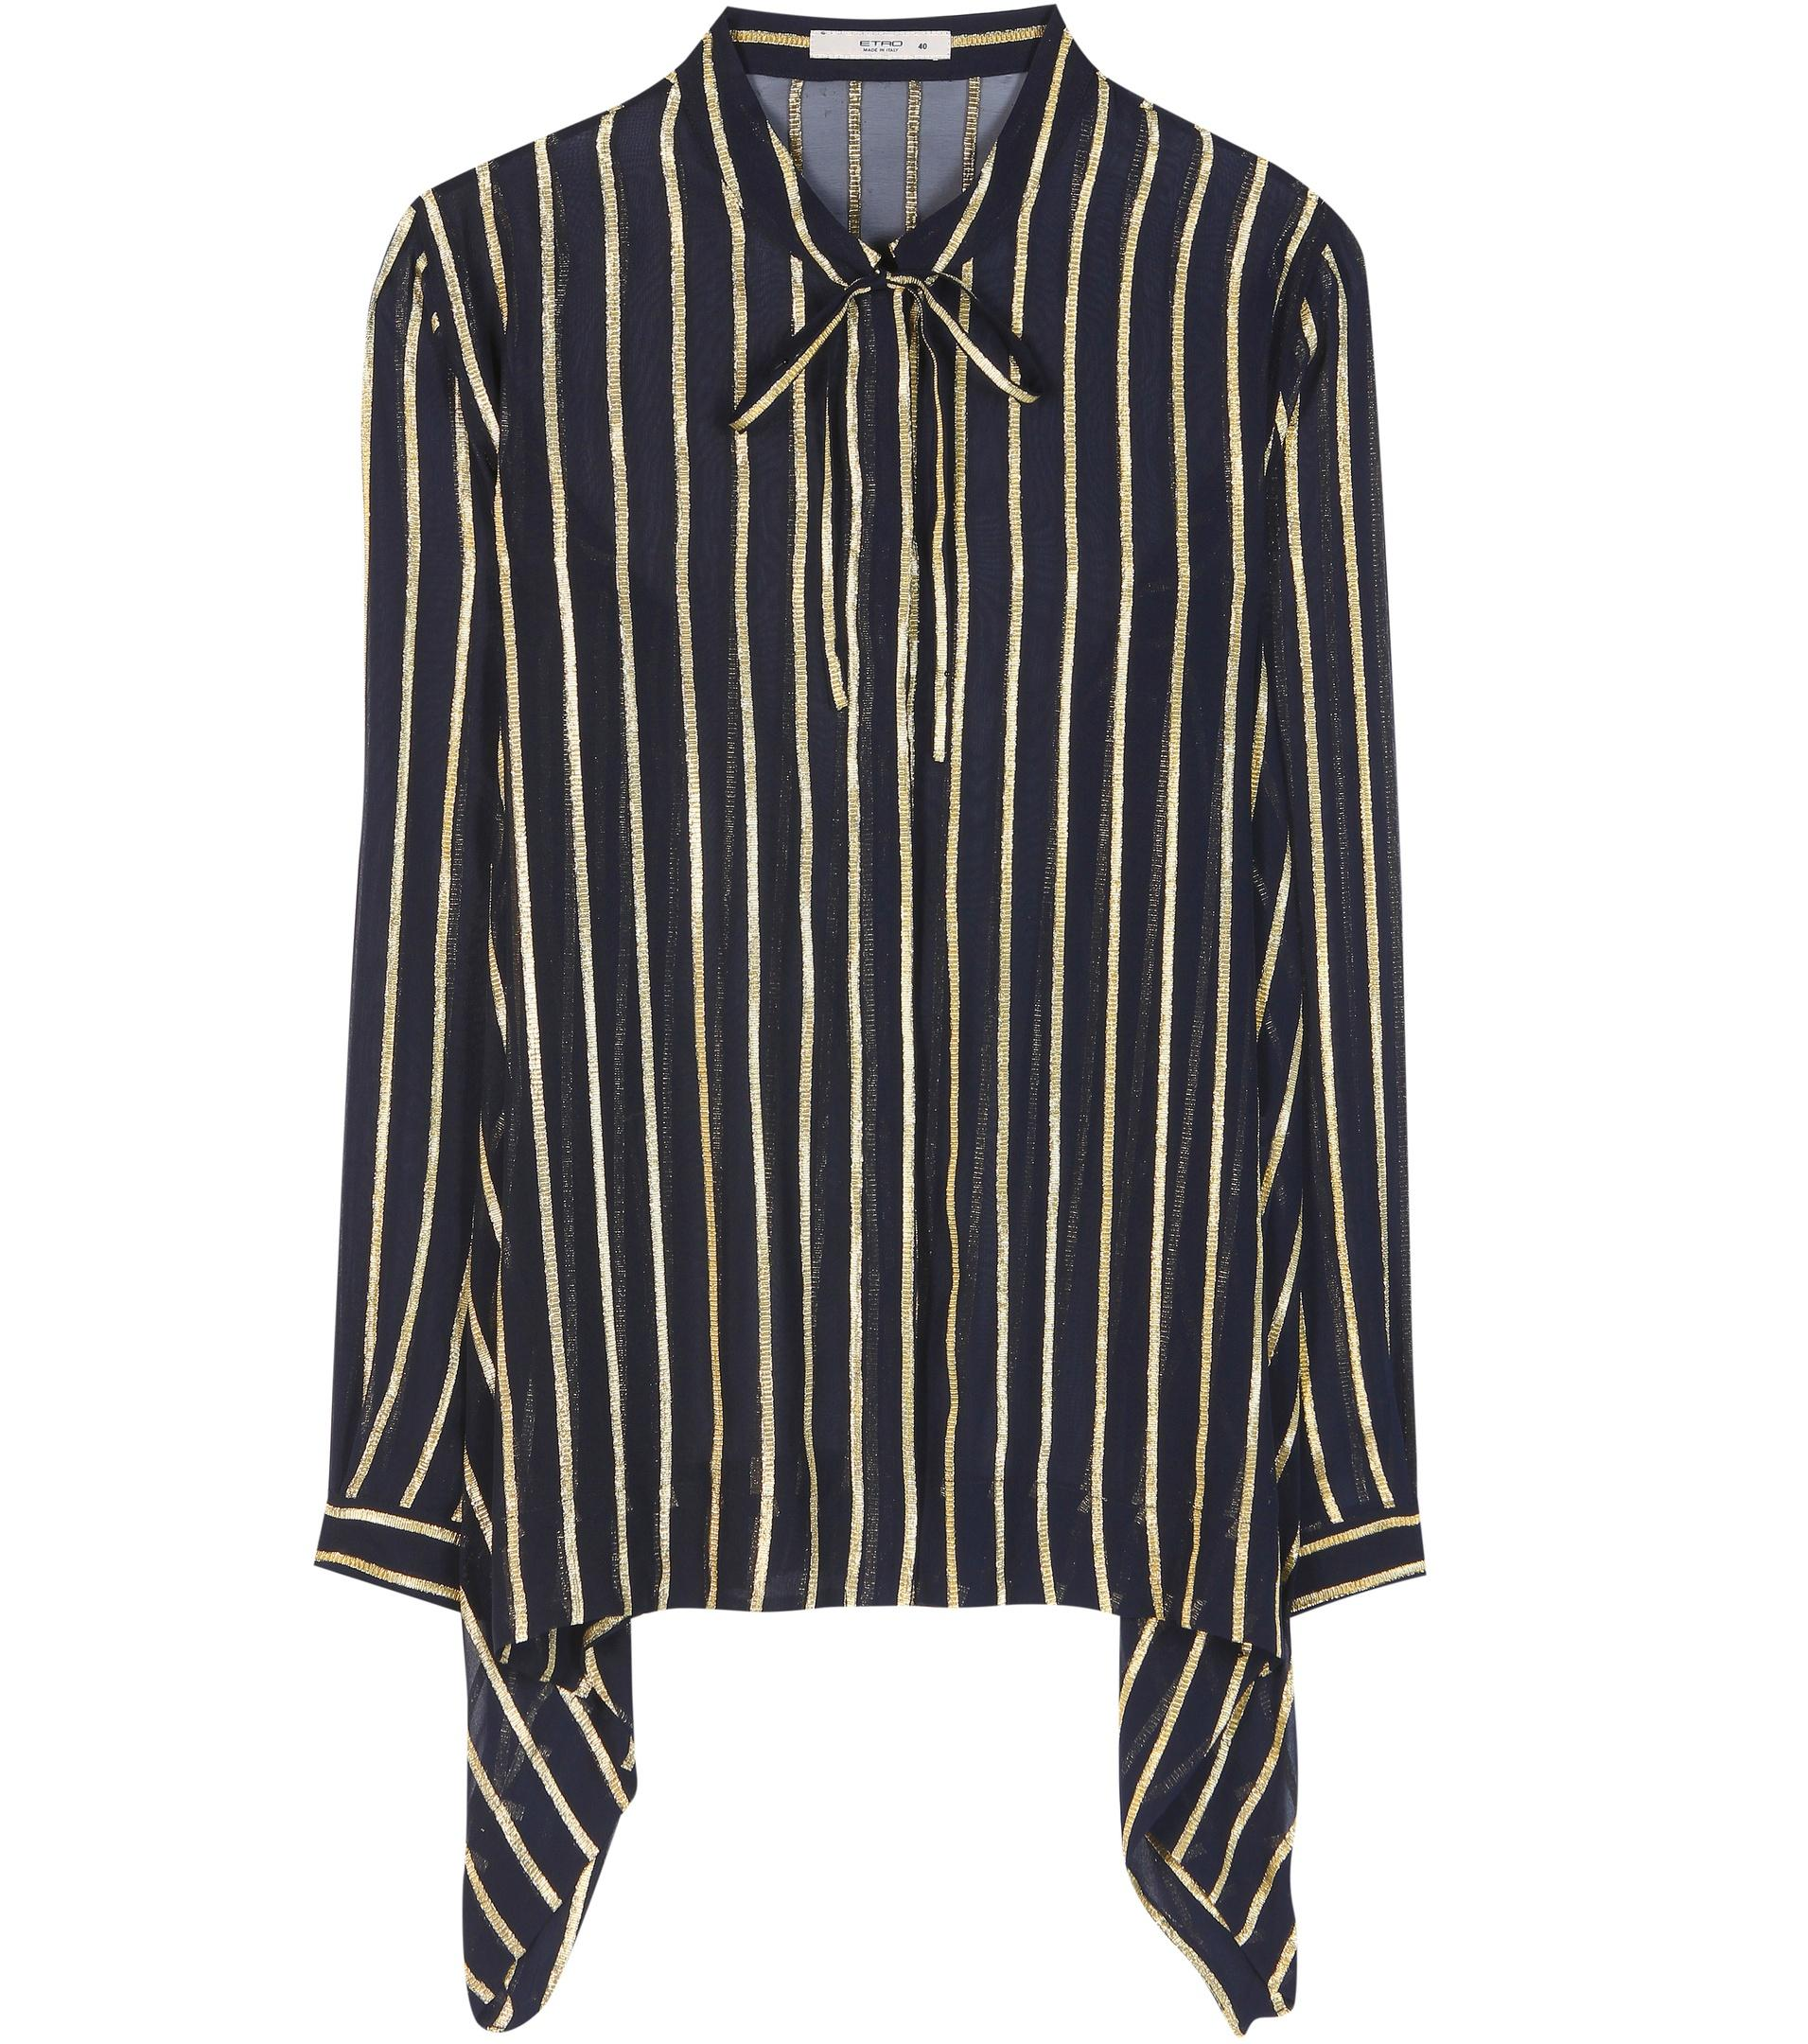 Shop italian striped shirt at Neiman Marcus, where you will find free shipping on the latest in fashion from top designers. More Details Ike Behar Gold Label Striped Dress Shirt, White/Blue Details Dress shirt featuring vertical stripes. Point collar; French-placket button front. Adjustable single-button cuffs.